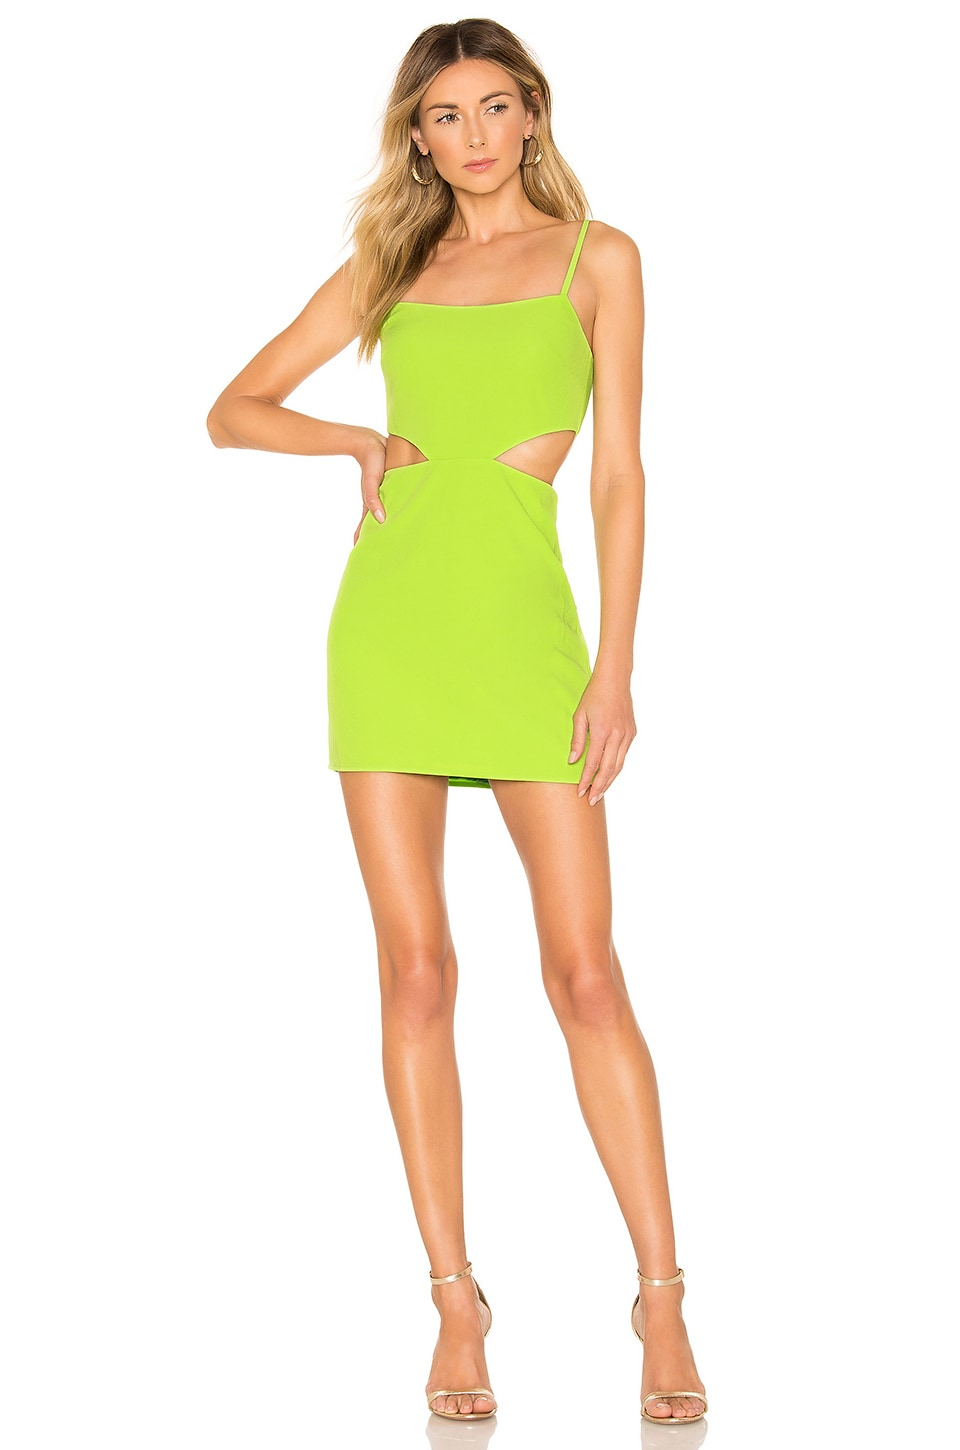 Lovers + Friends Brody Mini Dress in Lime